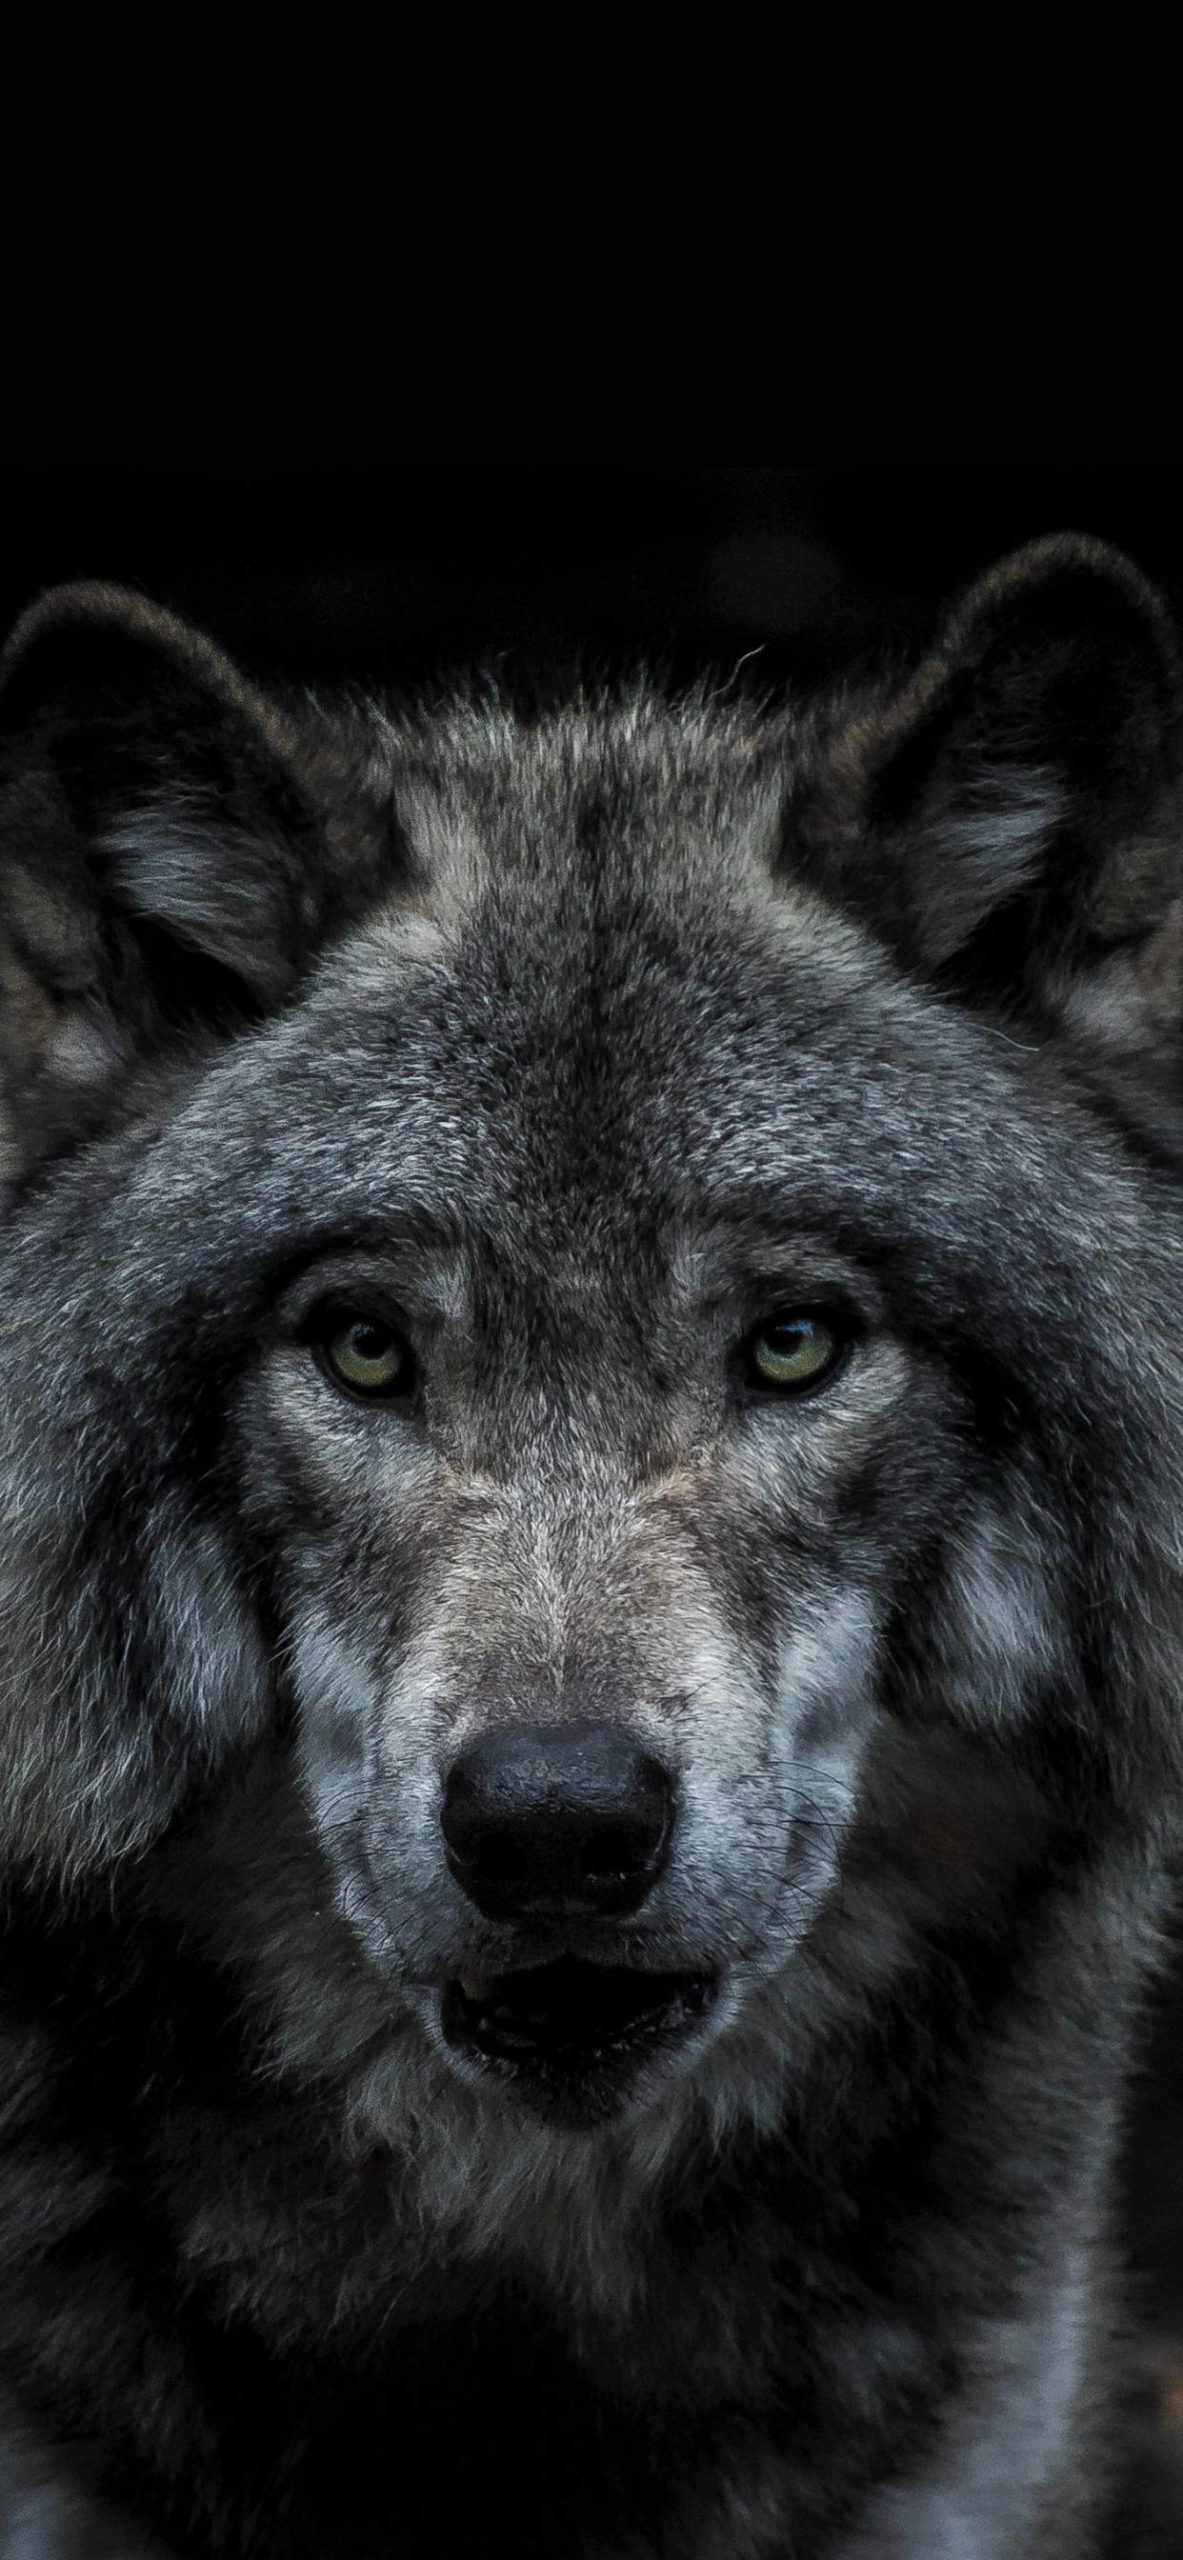 iPhone wallpapers animal wolf black scaled Wolf